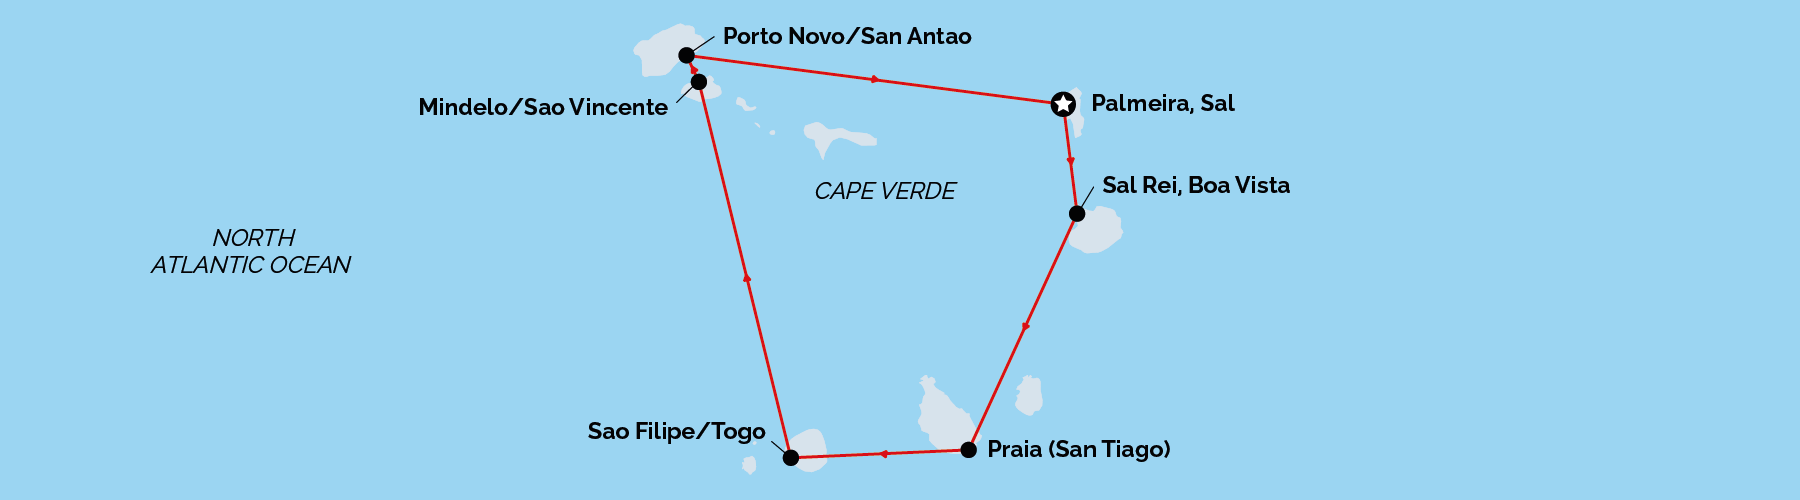 Unforgettable Cruises, Cape Verde cruise